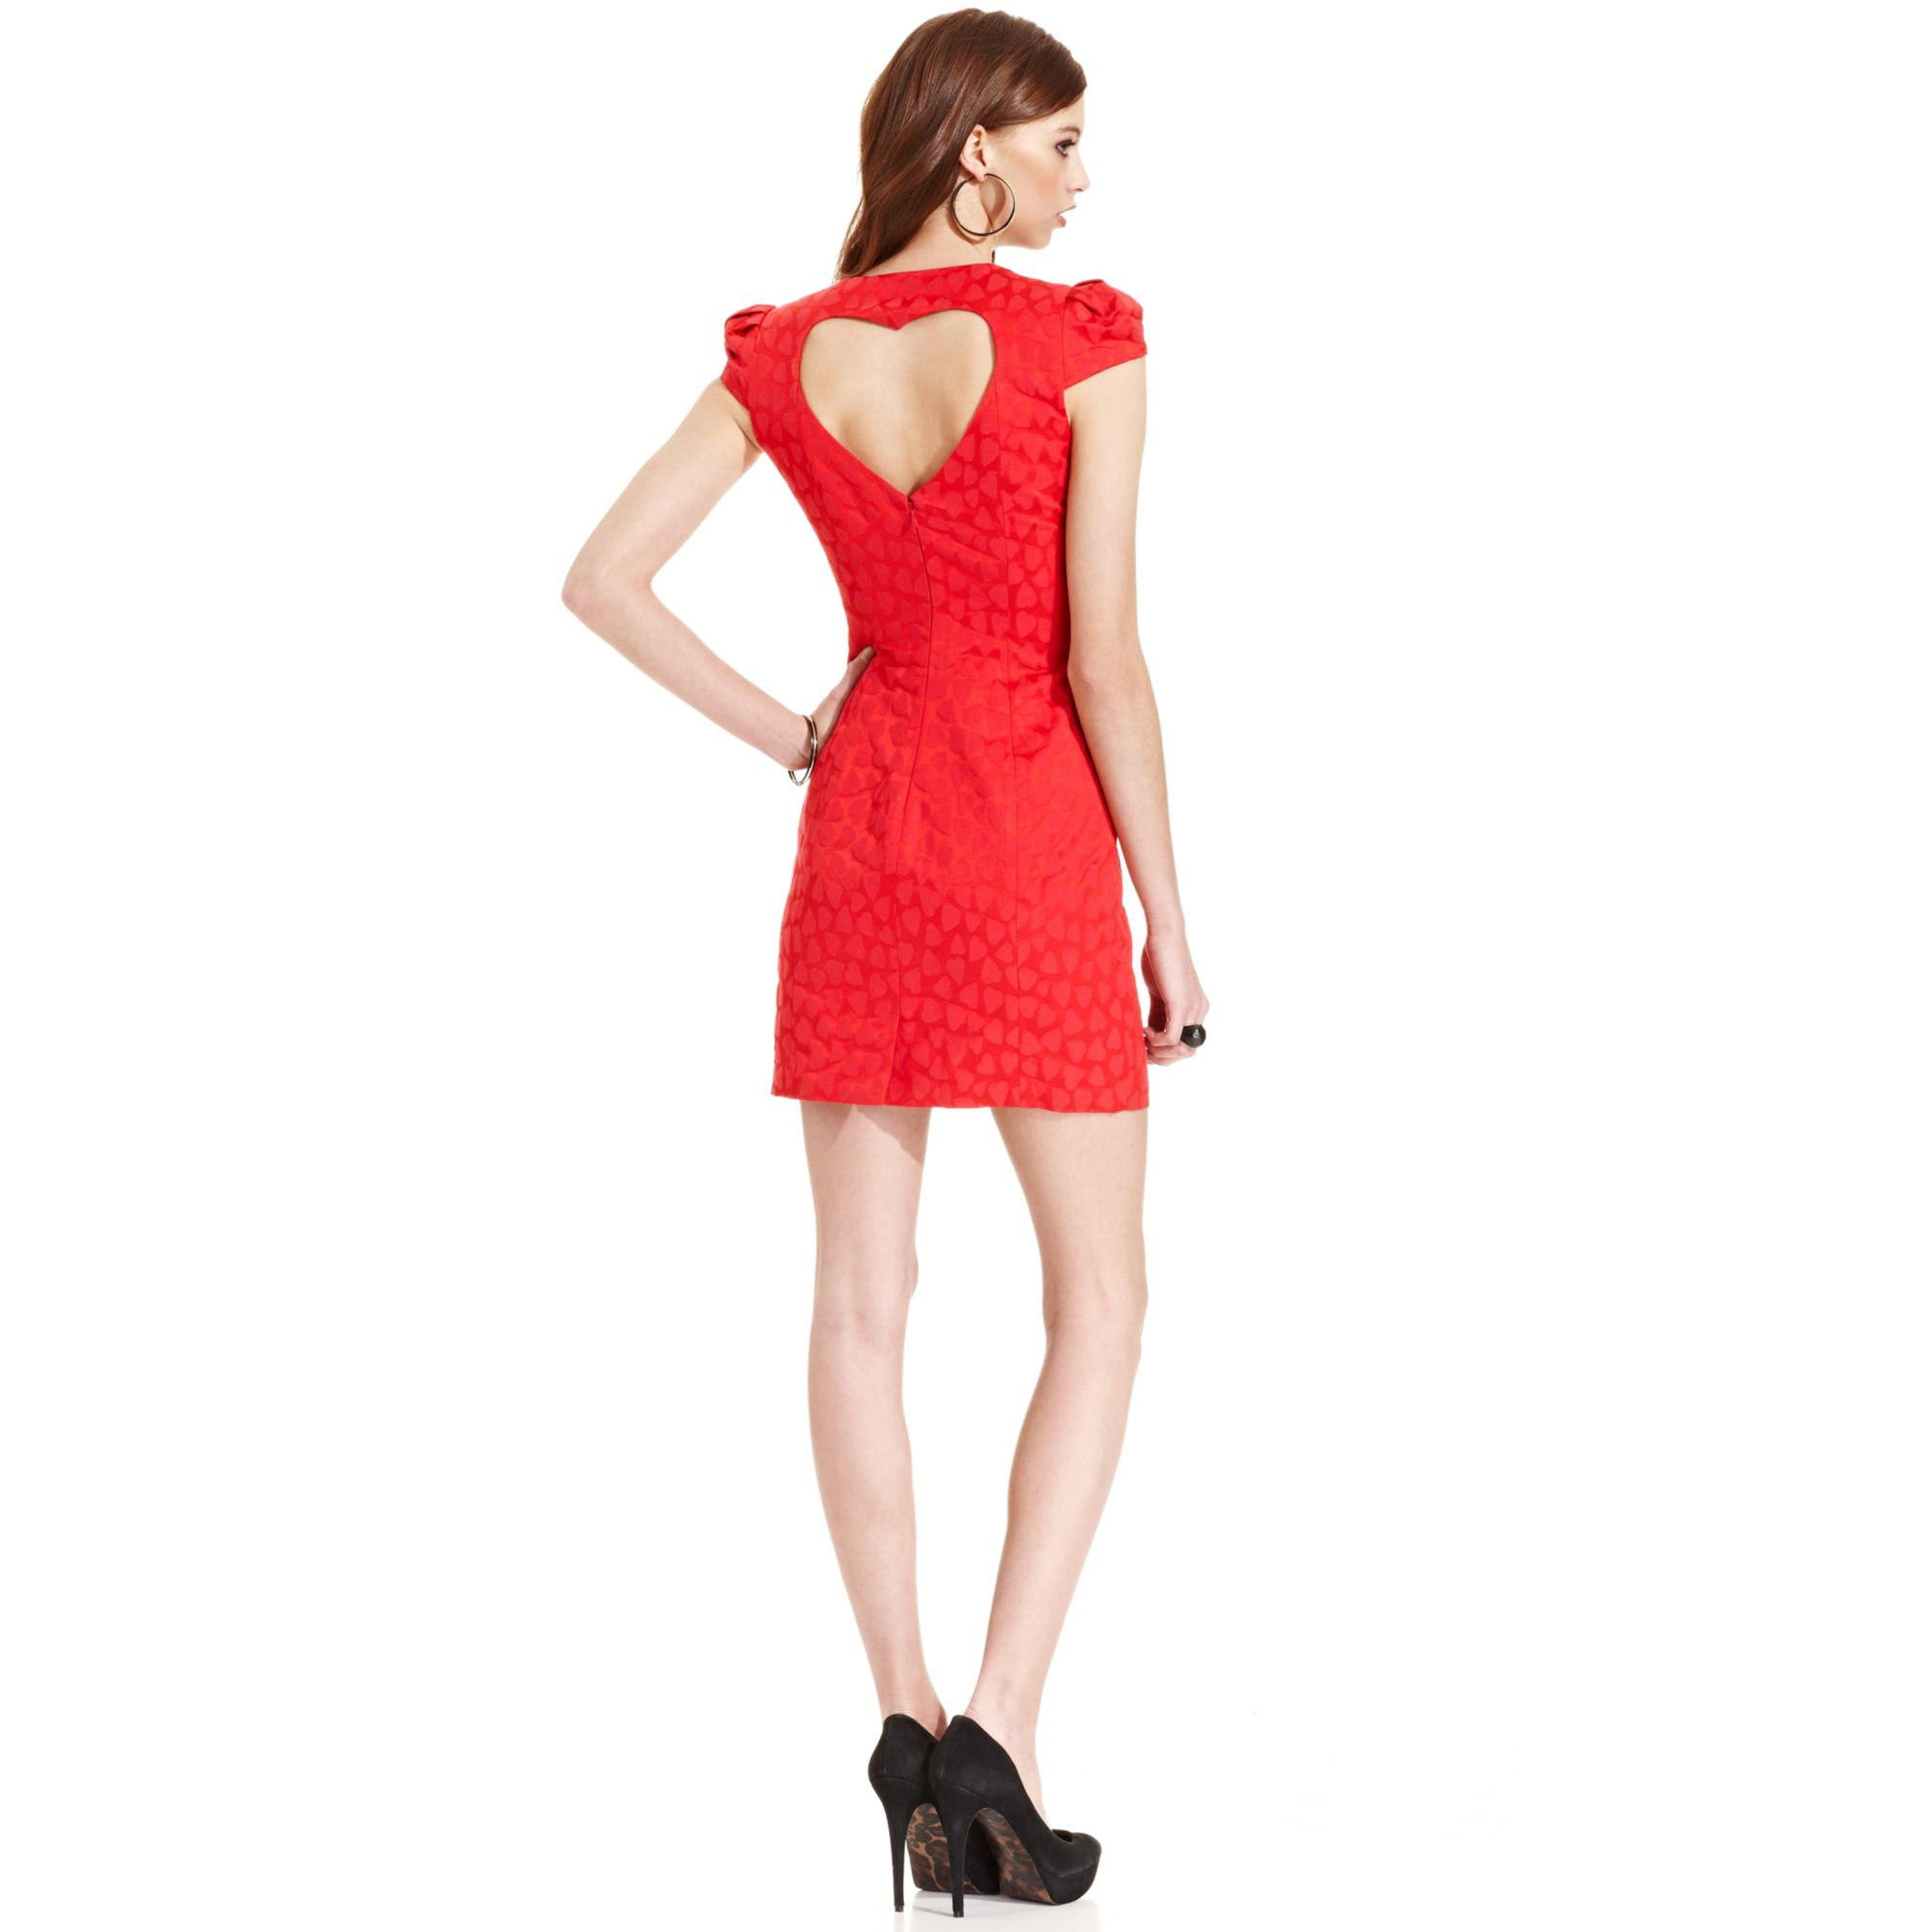 Guess Heart Cutout Dress in Red - Lyst